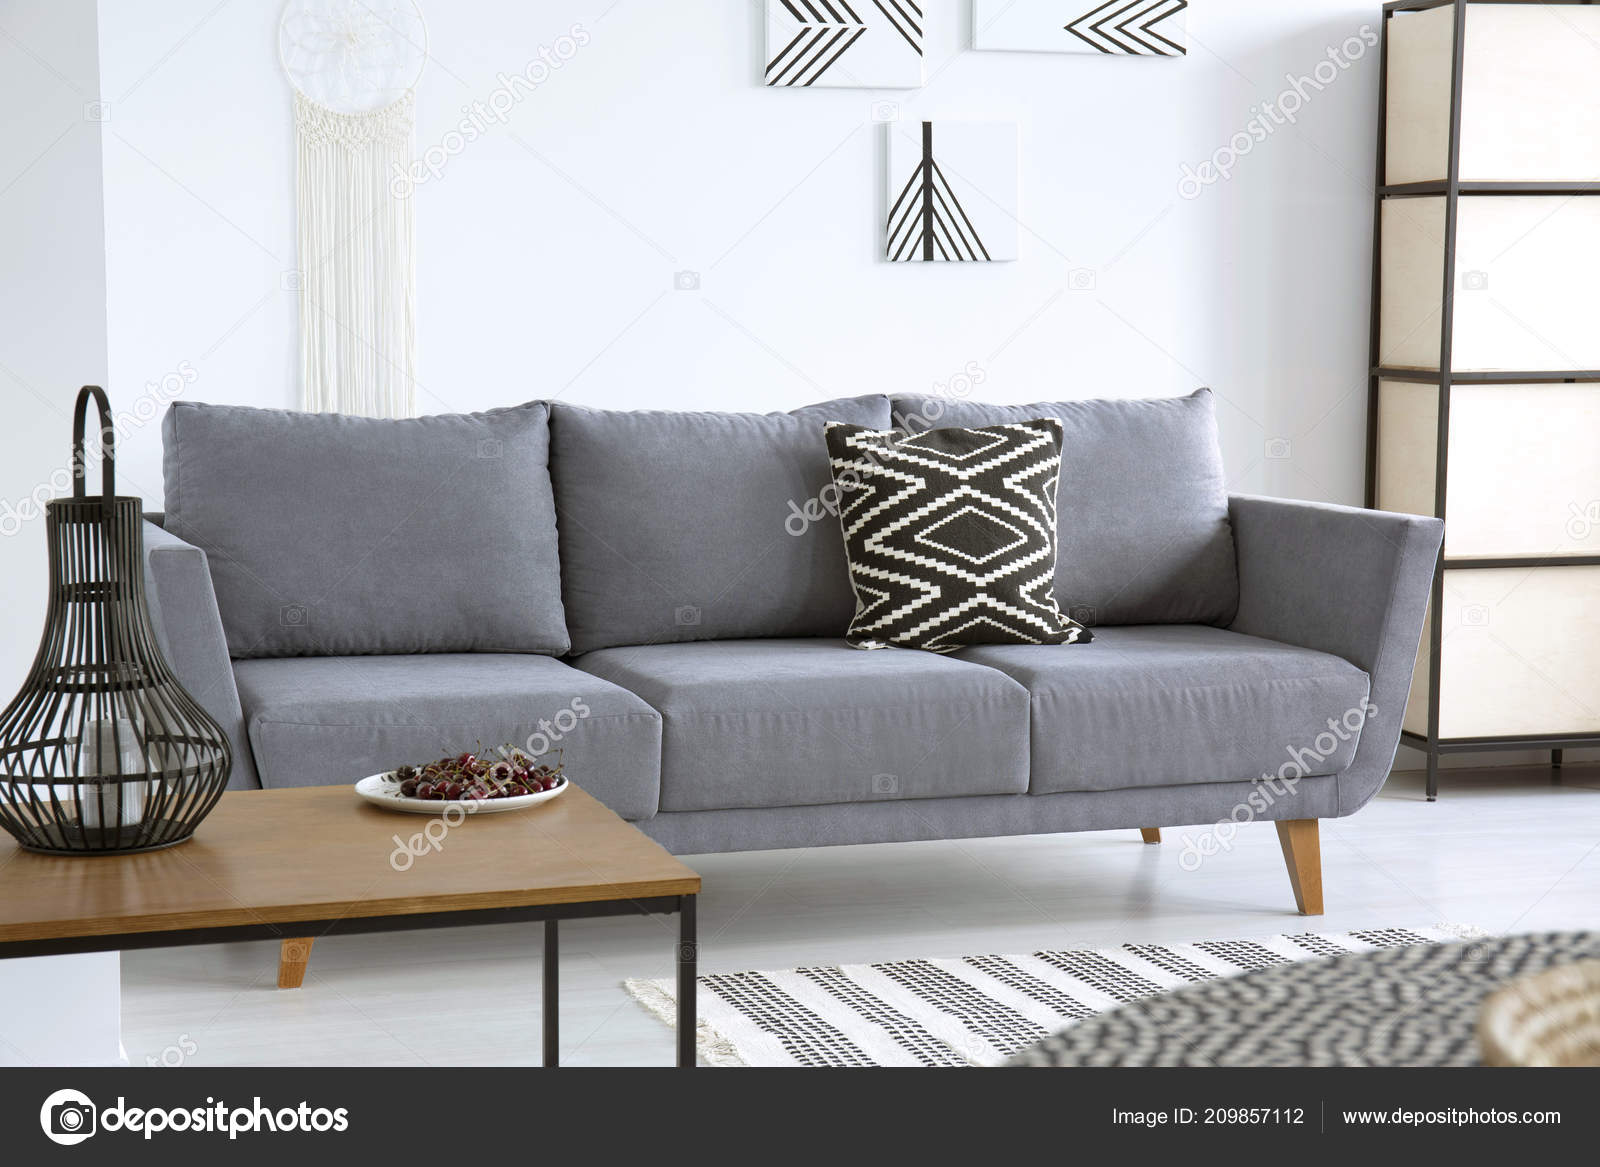 Lantern Table Grey Sofa Patterned Cushion White Living Room